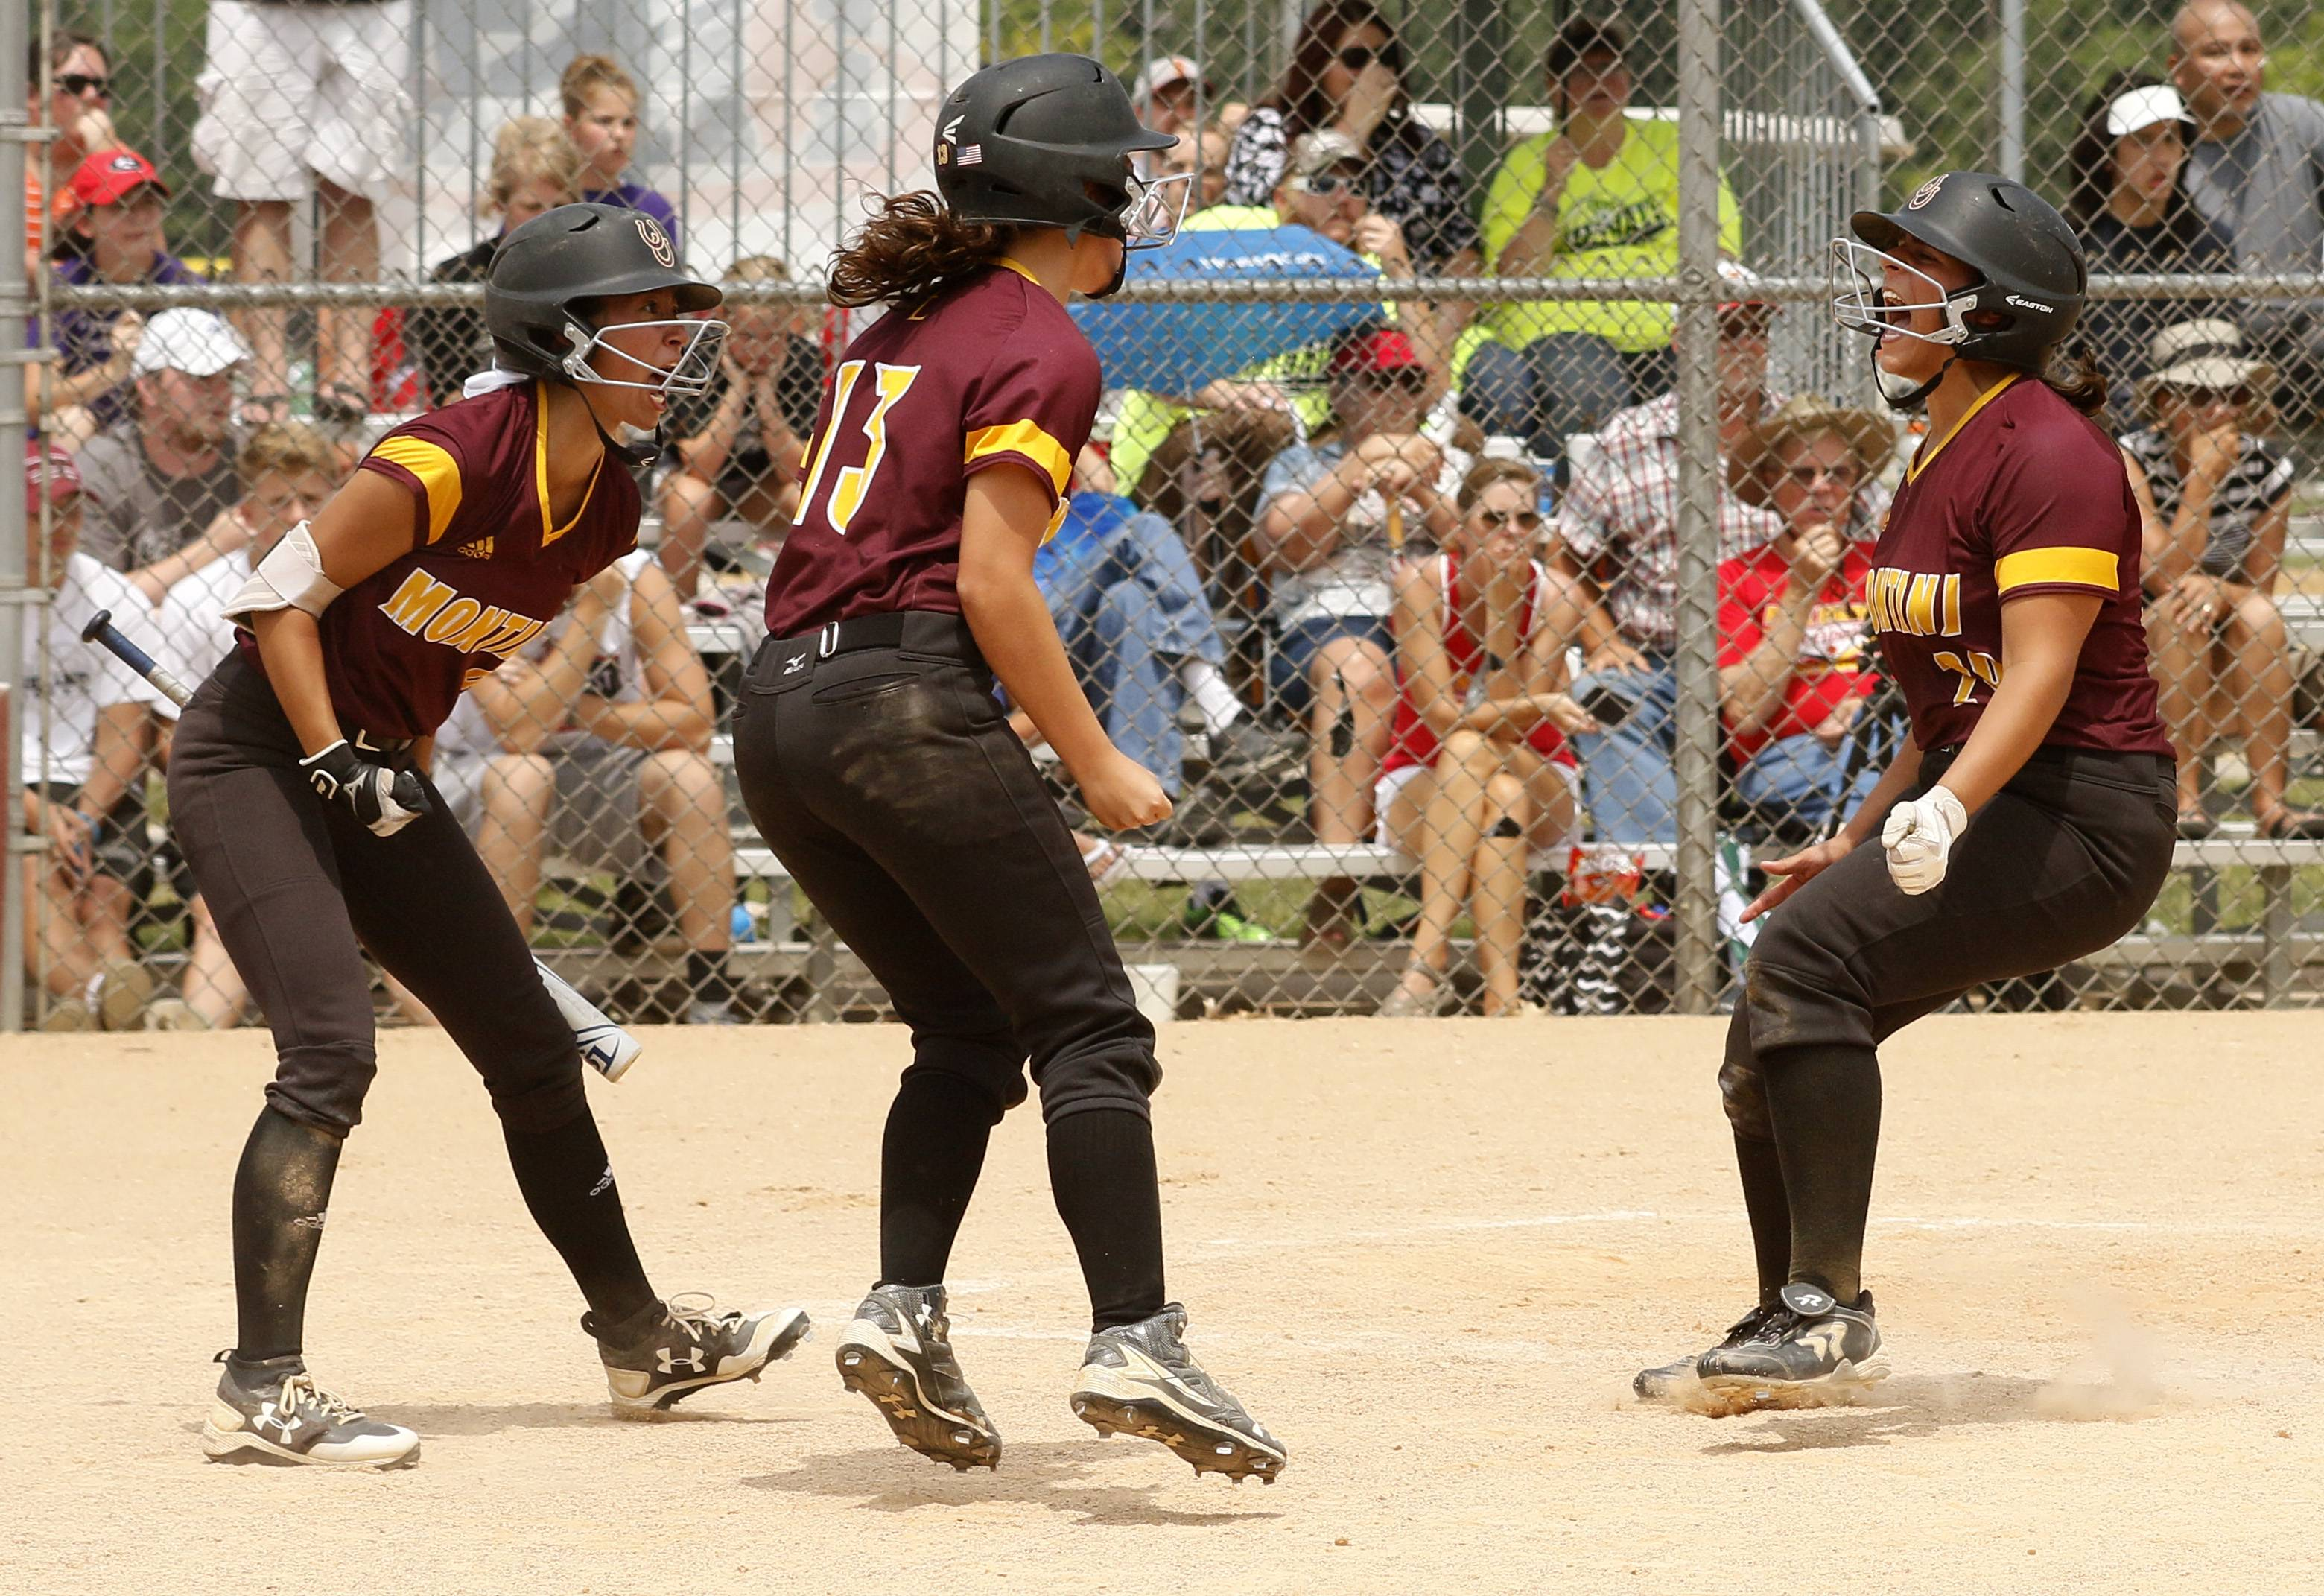 Montini Catholic's Else Spaccapaniccia (29) is greeted at home plate against Kaneland during the IHSA Class 3A state softball championship.